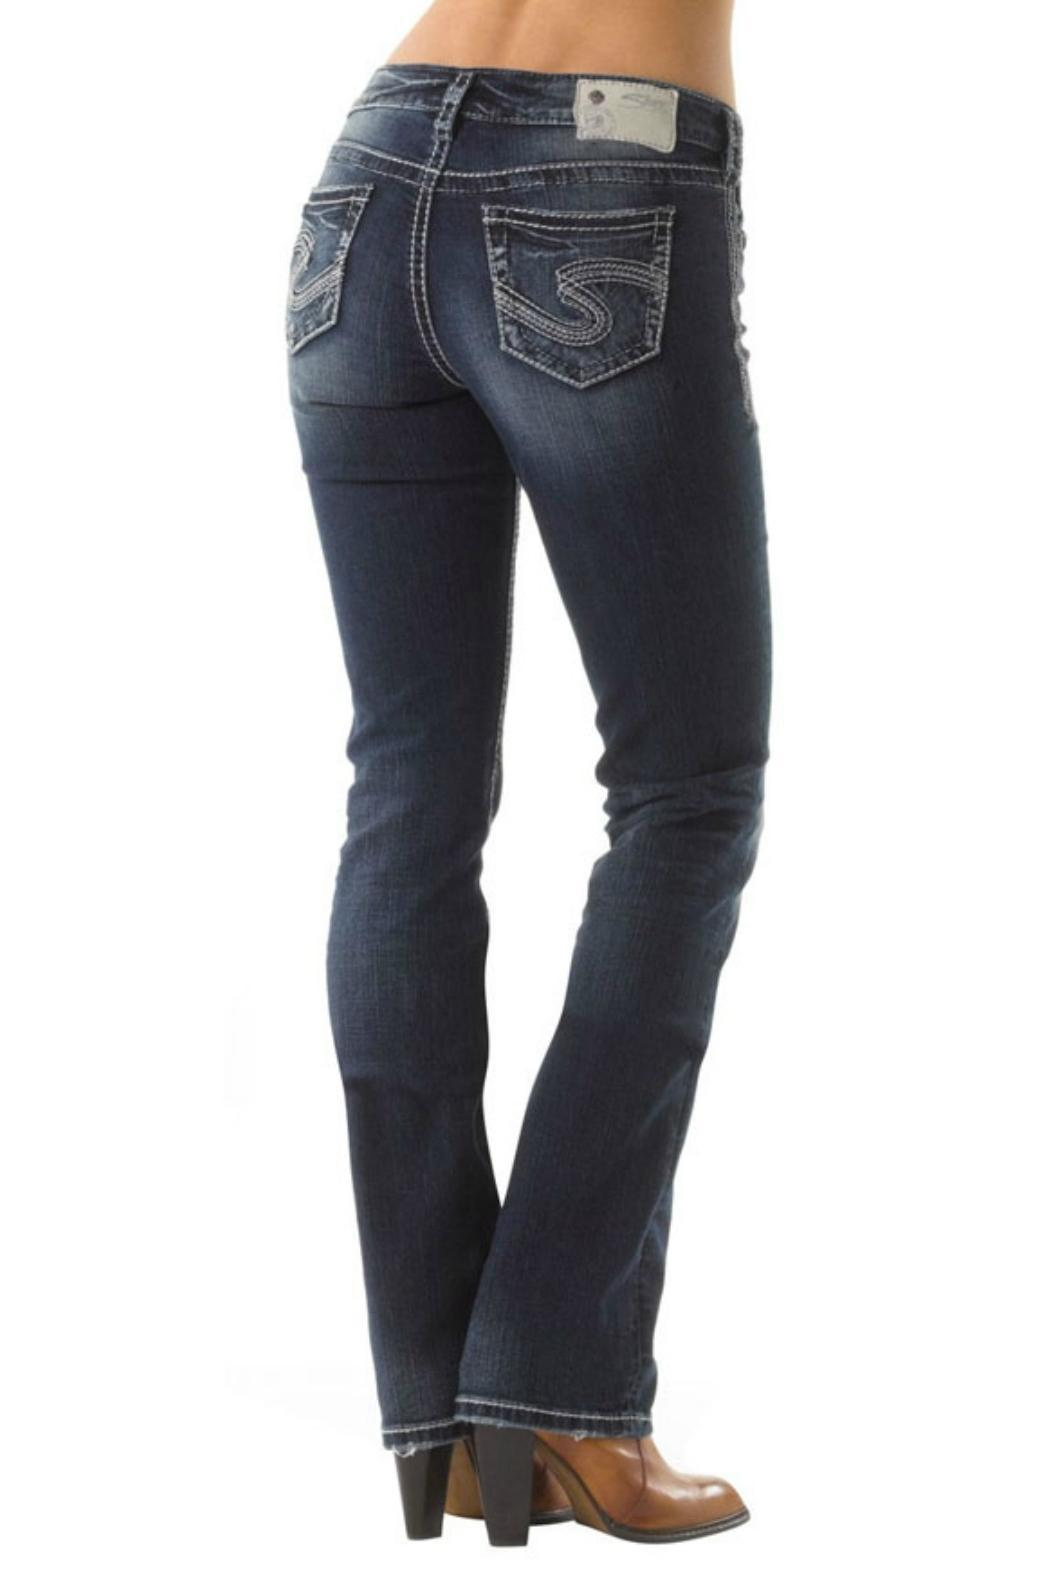 d7df0394 Silver Jeans Co. Aiko Slim Bootcut from New Hampshire by SolSistar ...